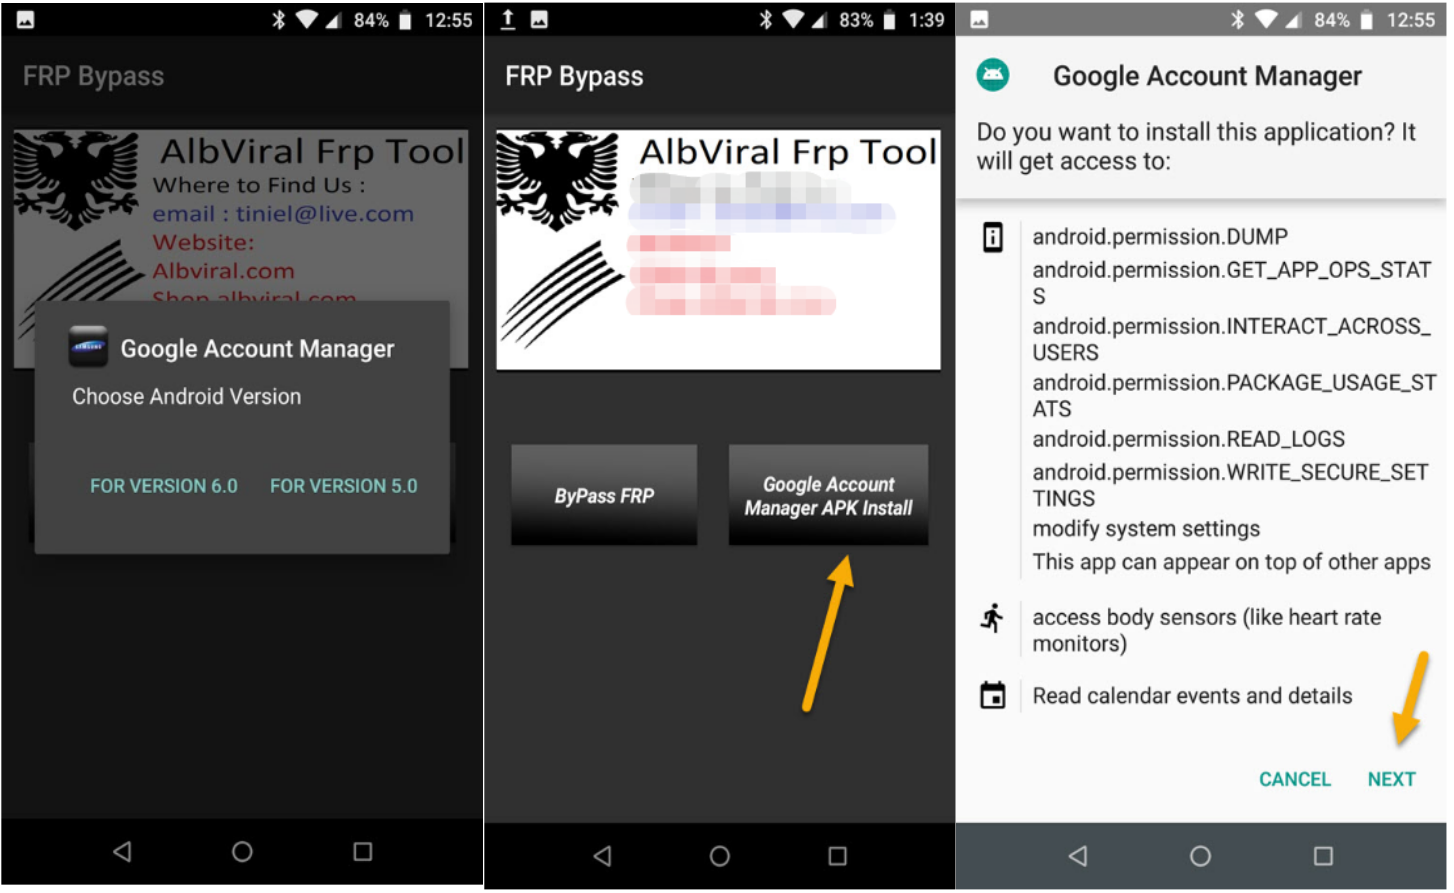 download and install Google account manager APK